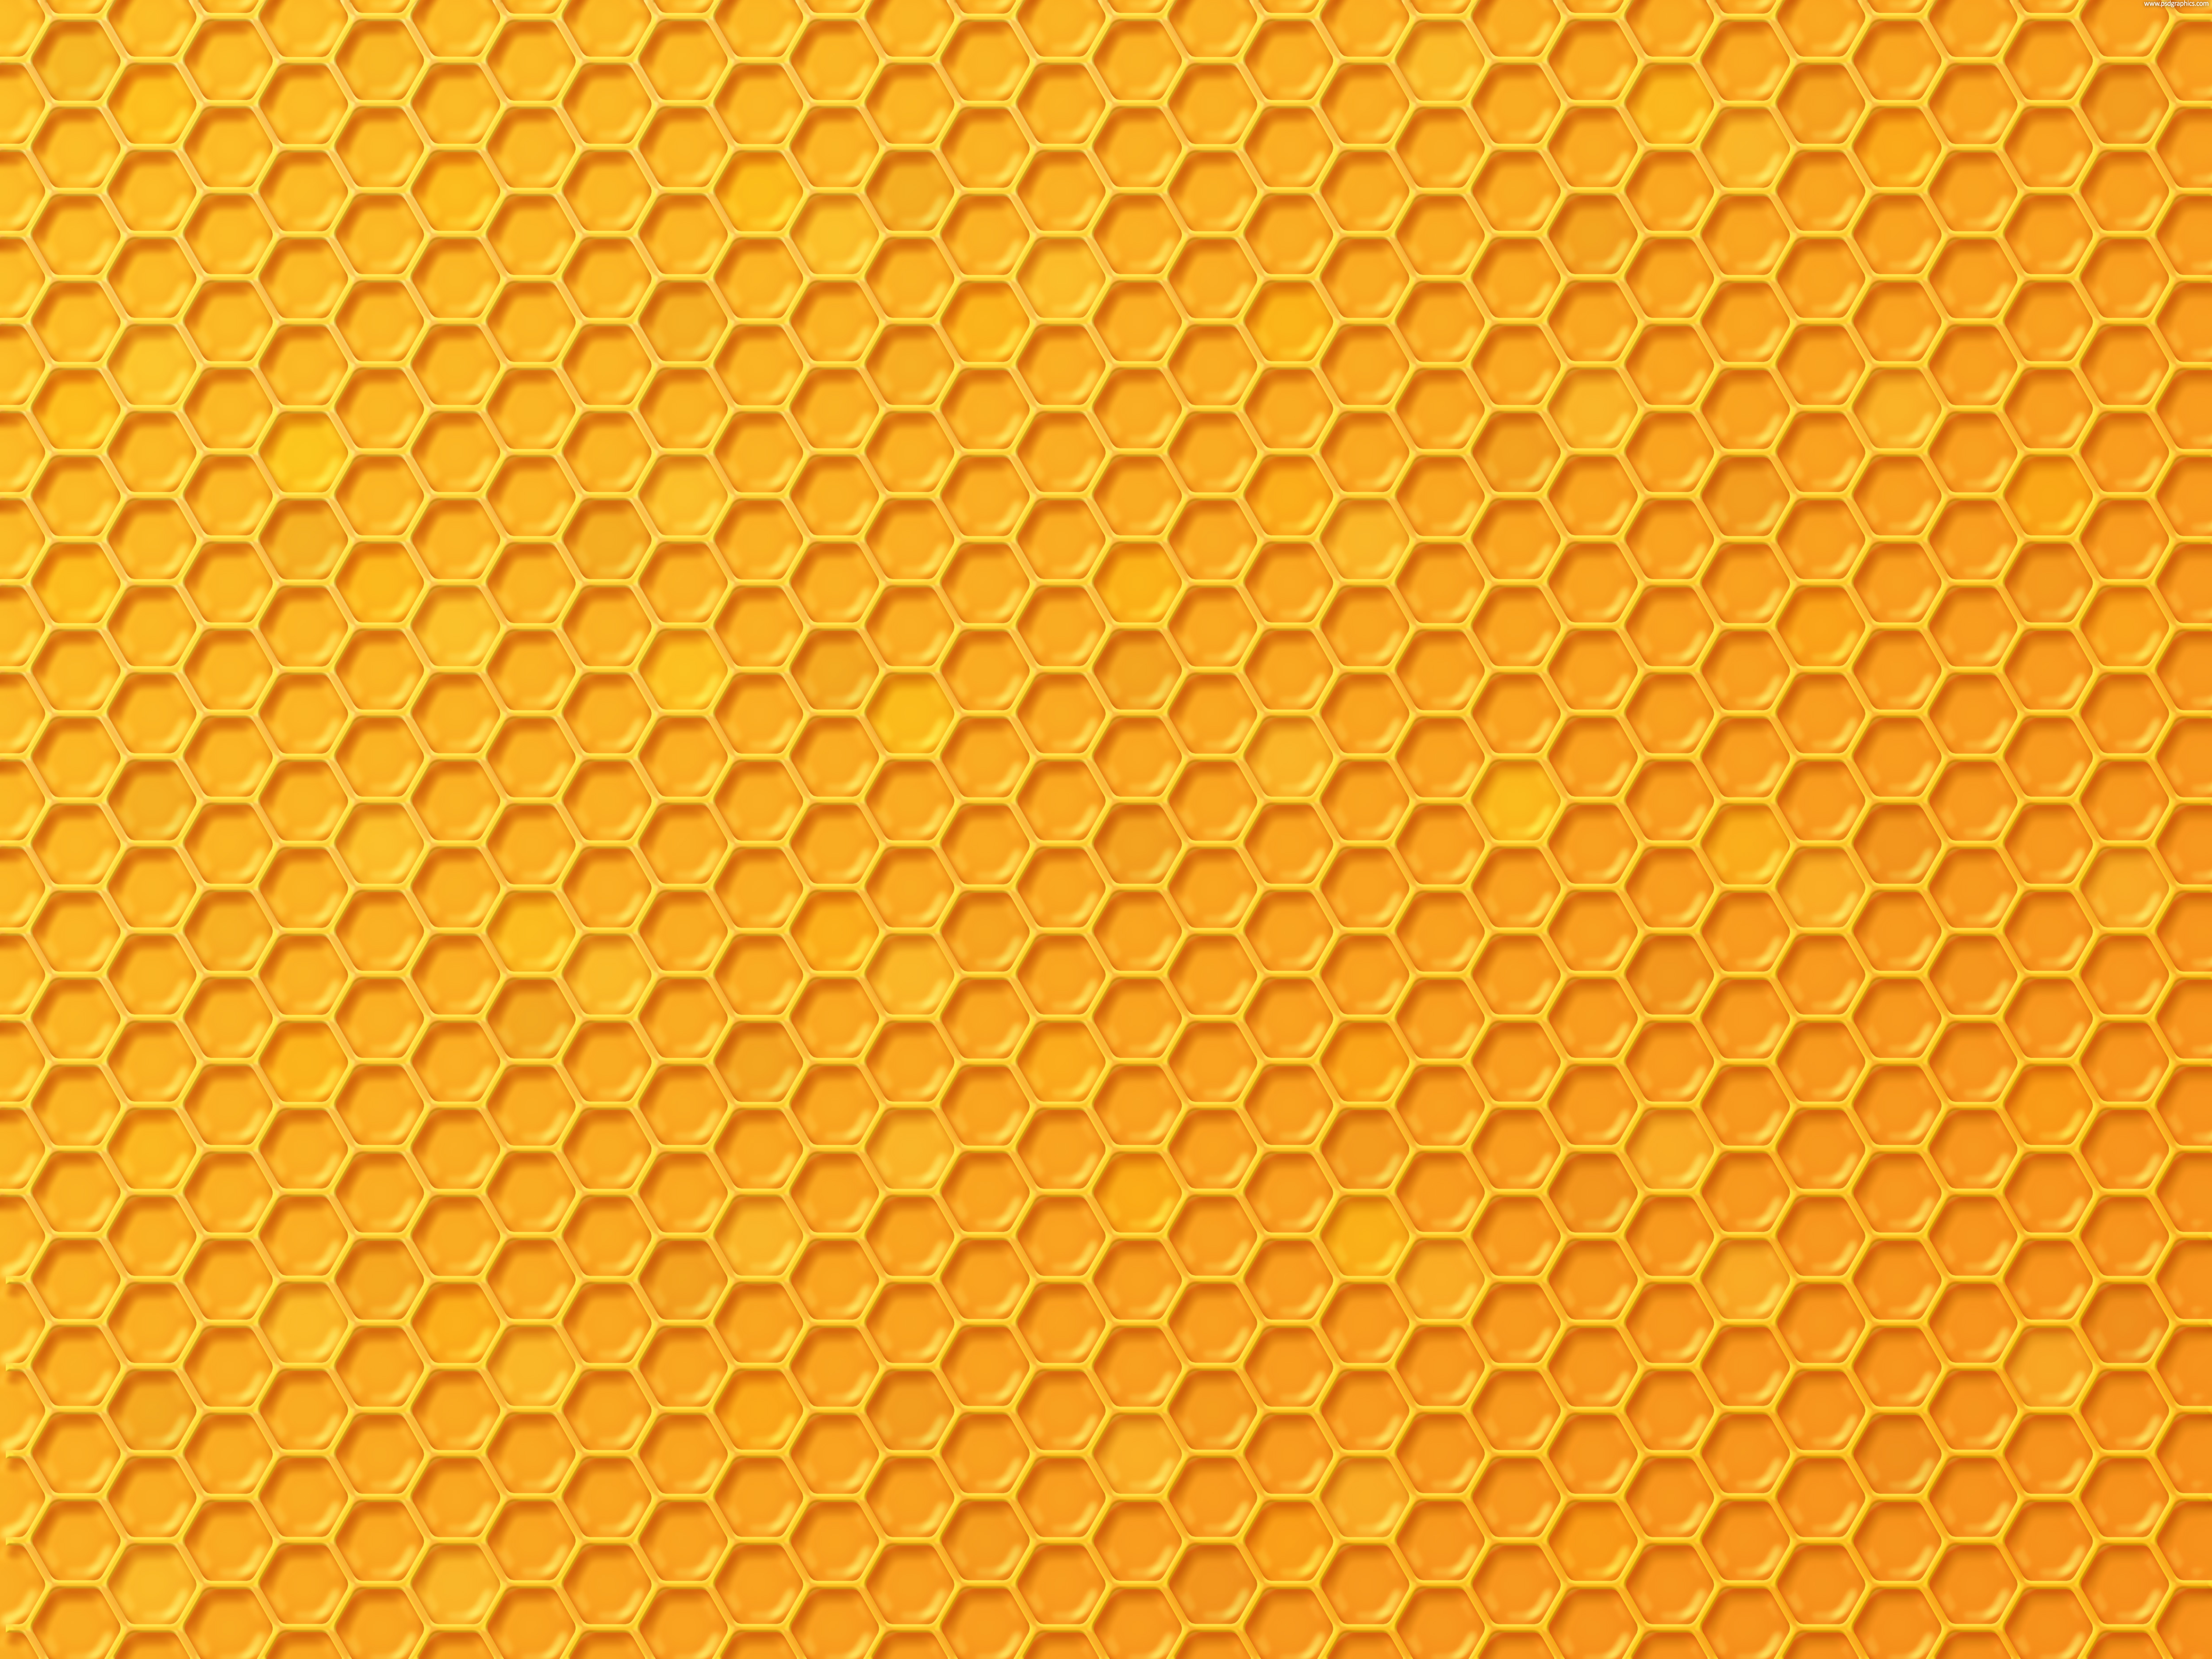 Honeycomb texture psdgraphics honeycomb voltagebd Image collections